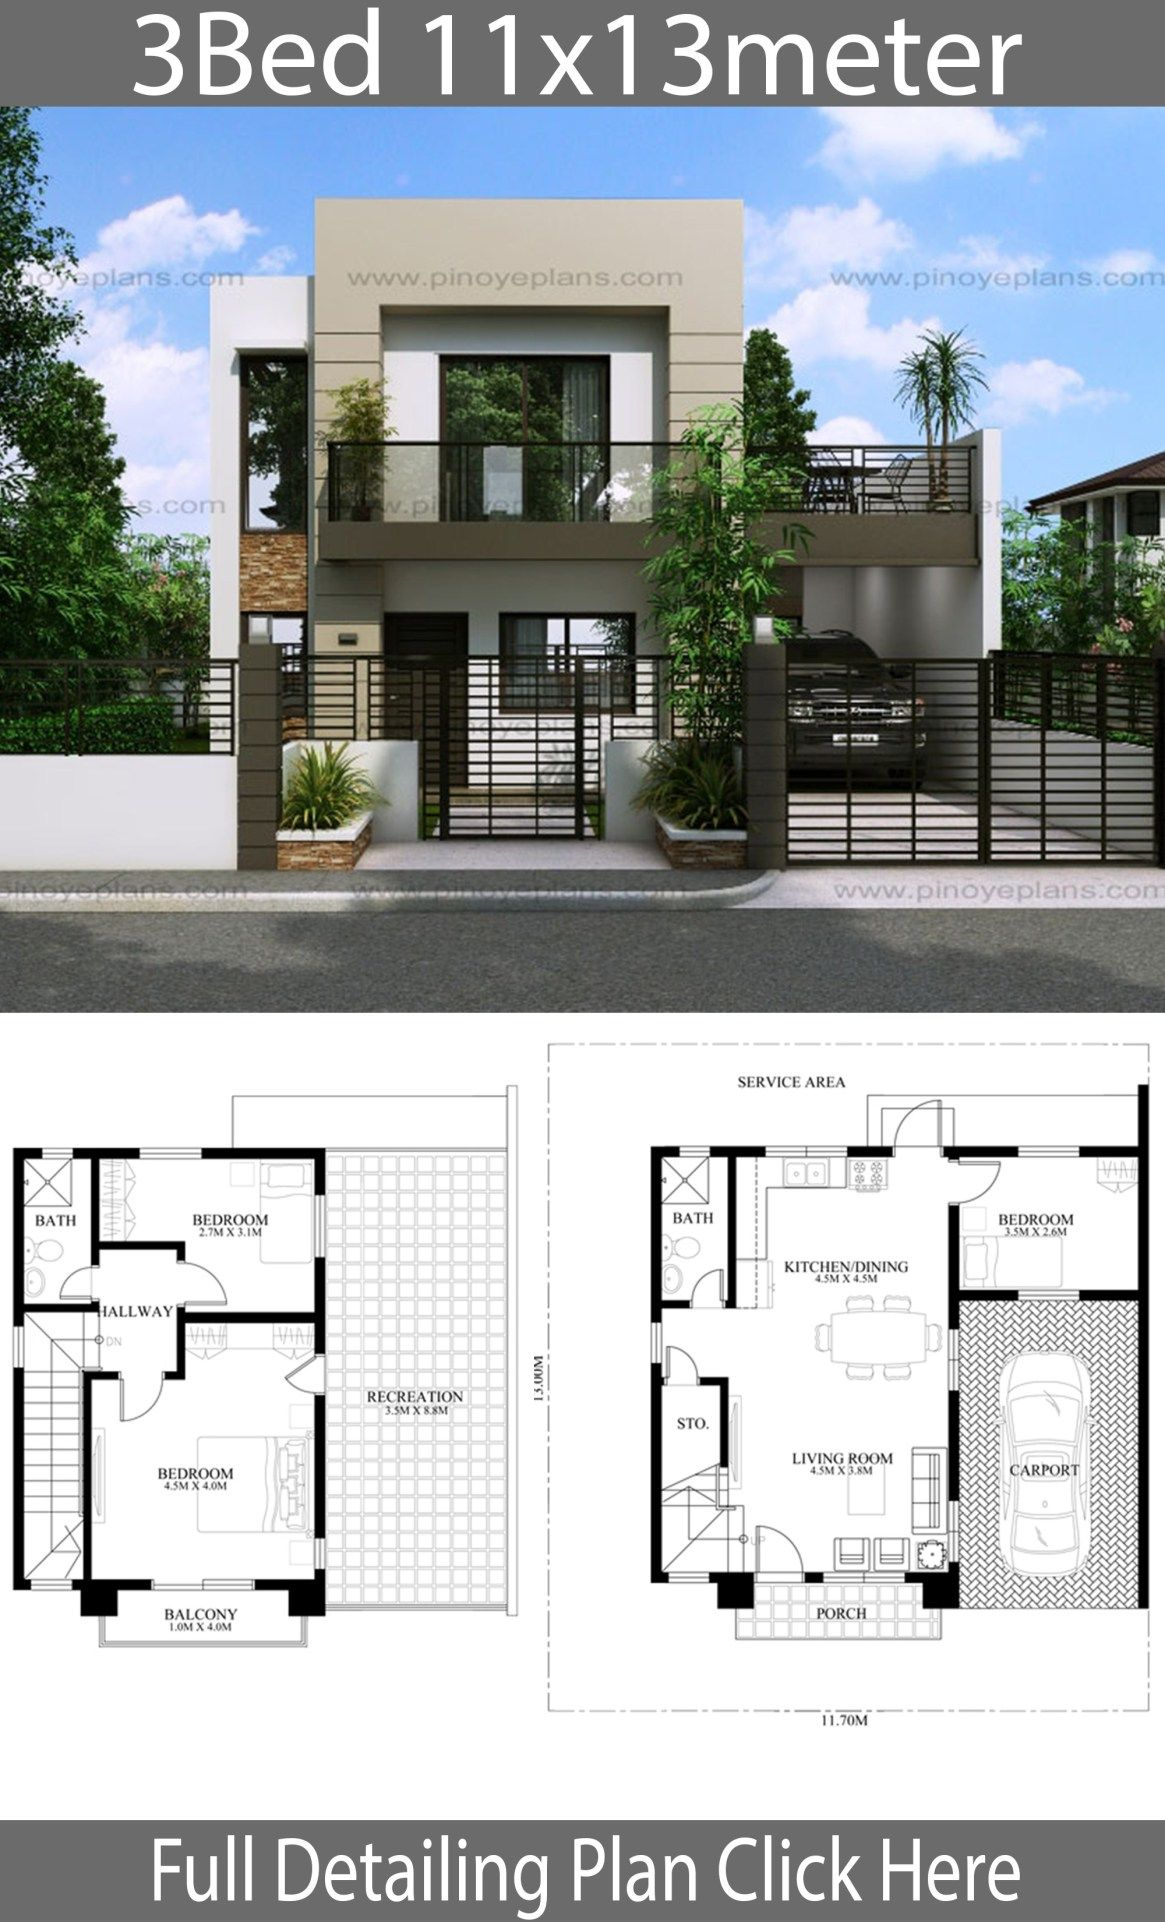 House design 11x11m with 11 bedrooms - Home Design with Plansearch